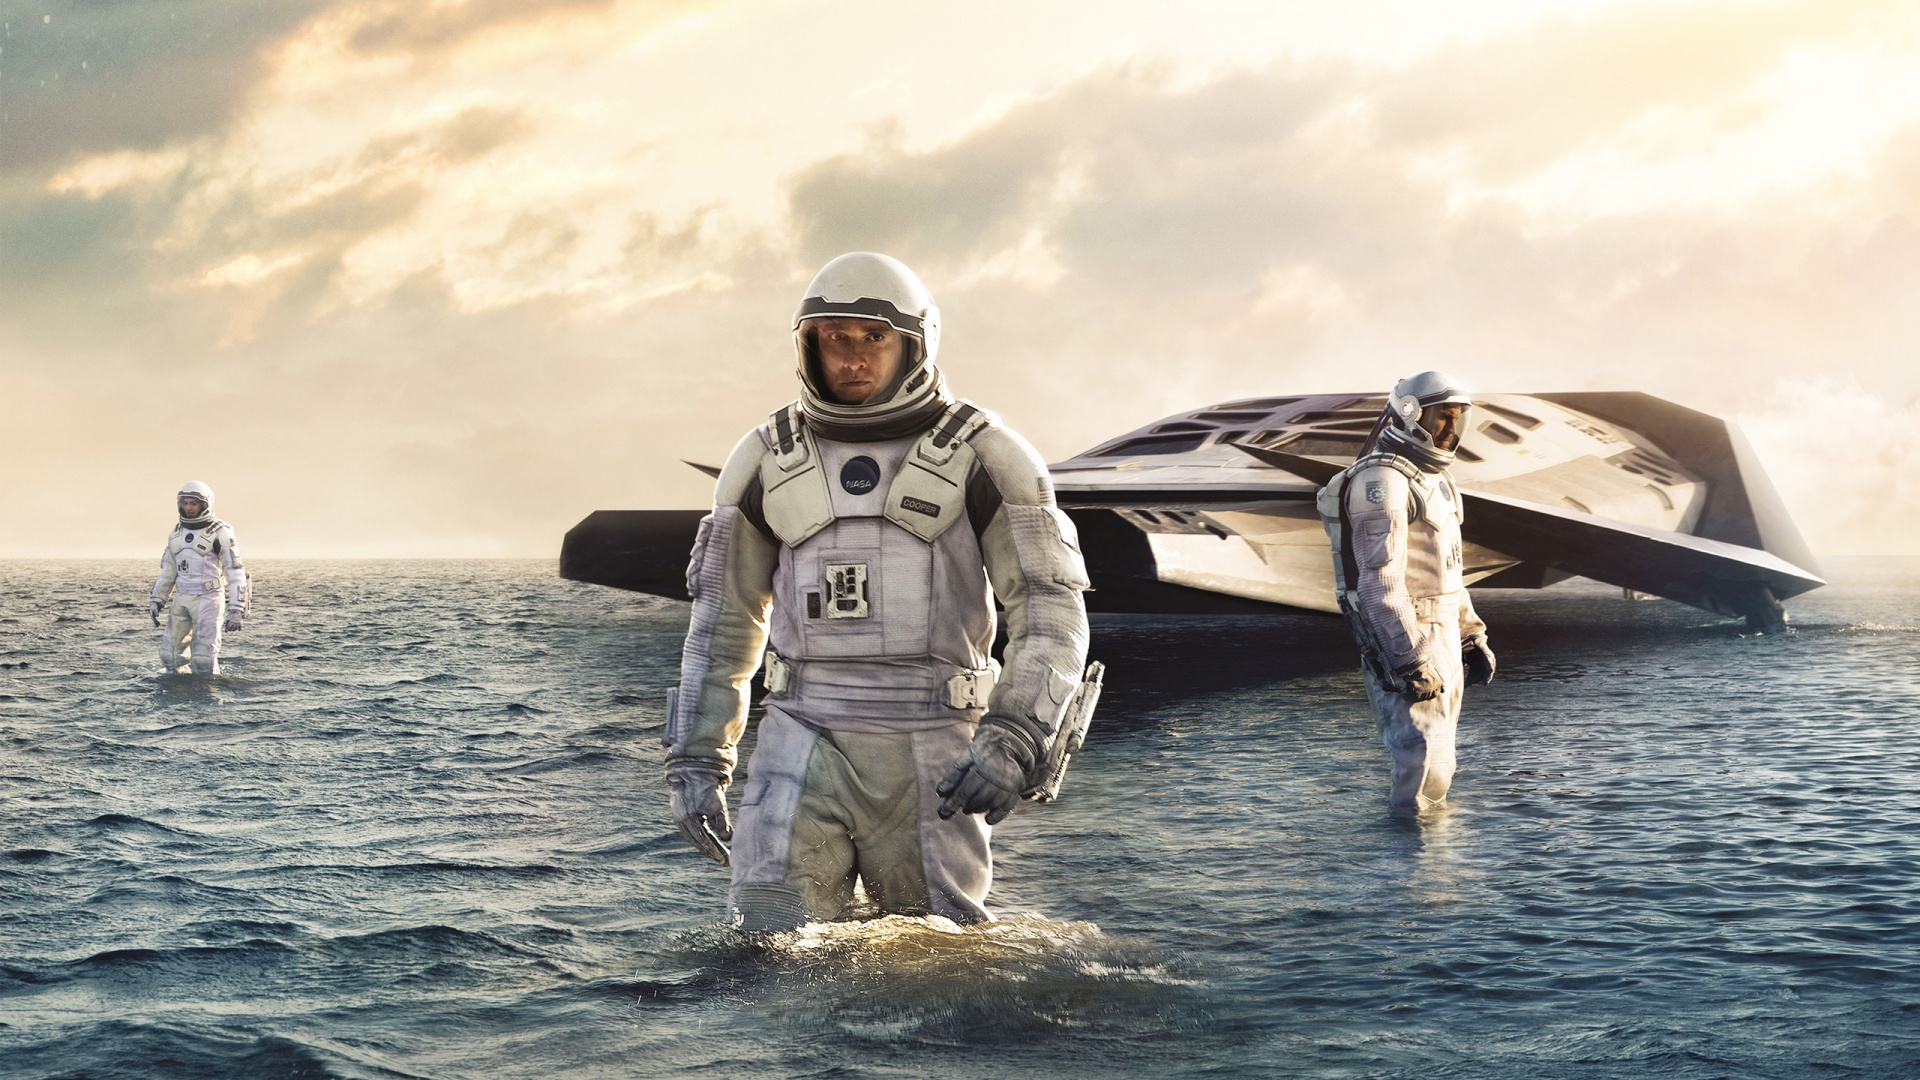 interstellar_movie-1920x1080